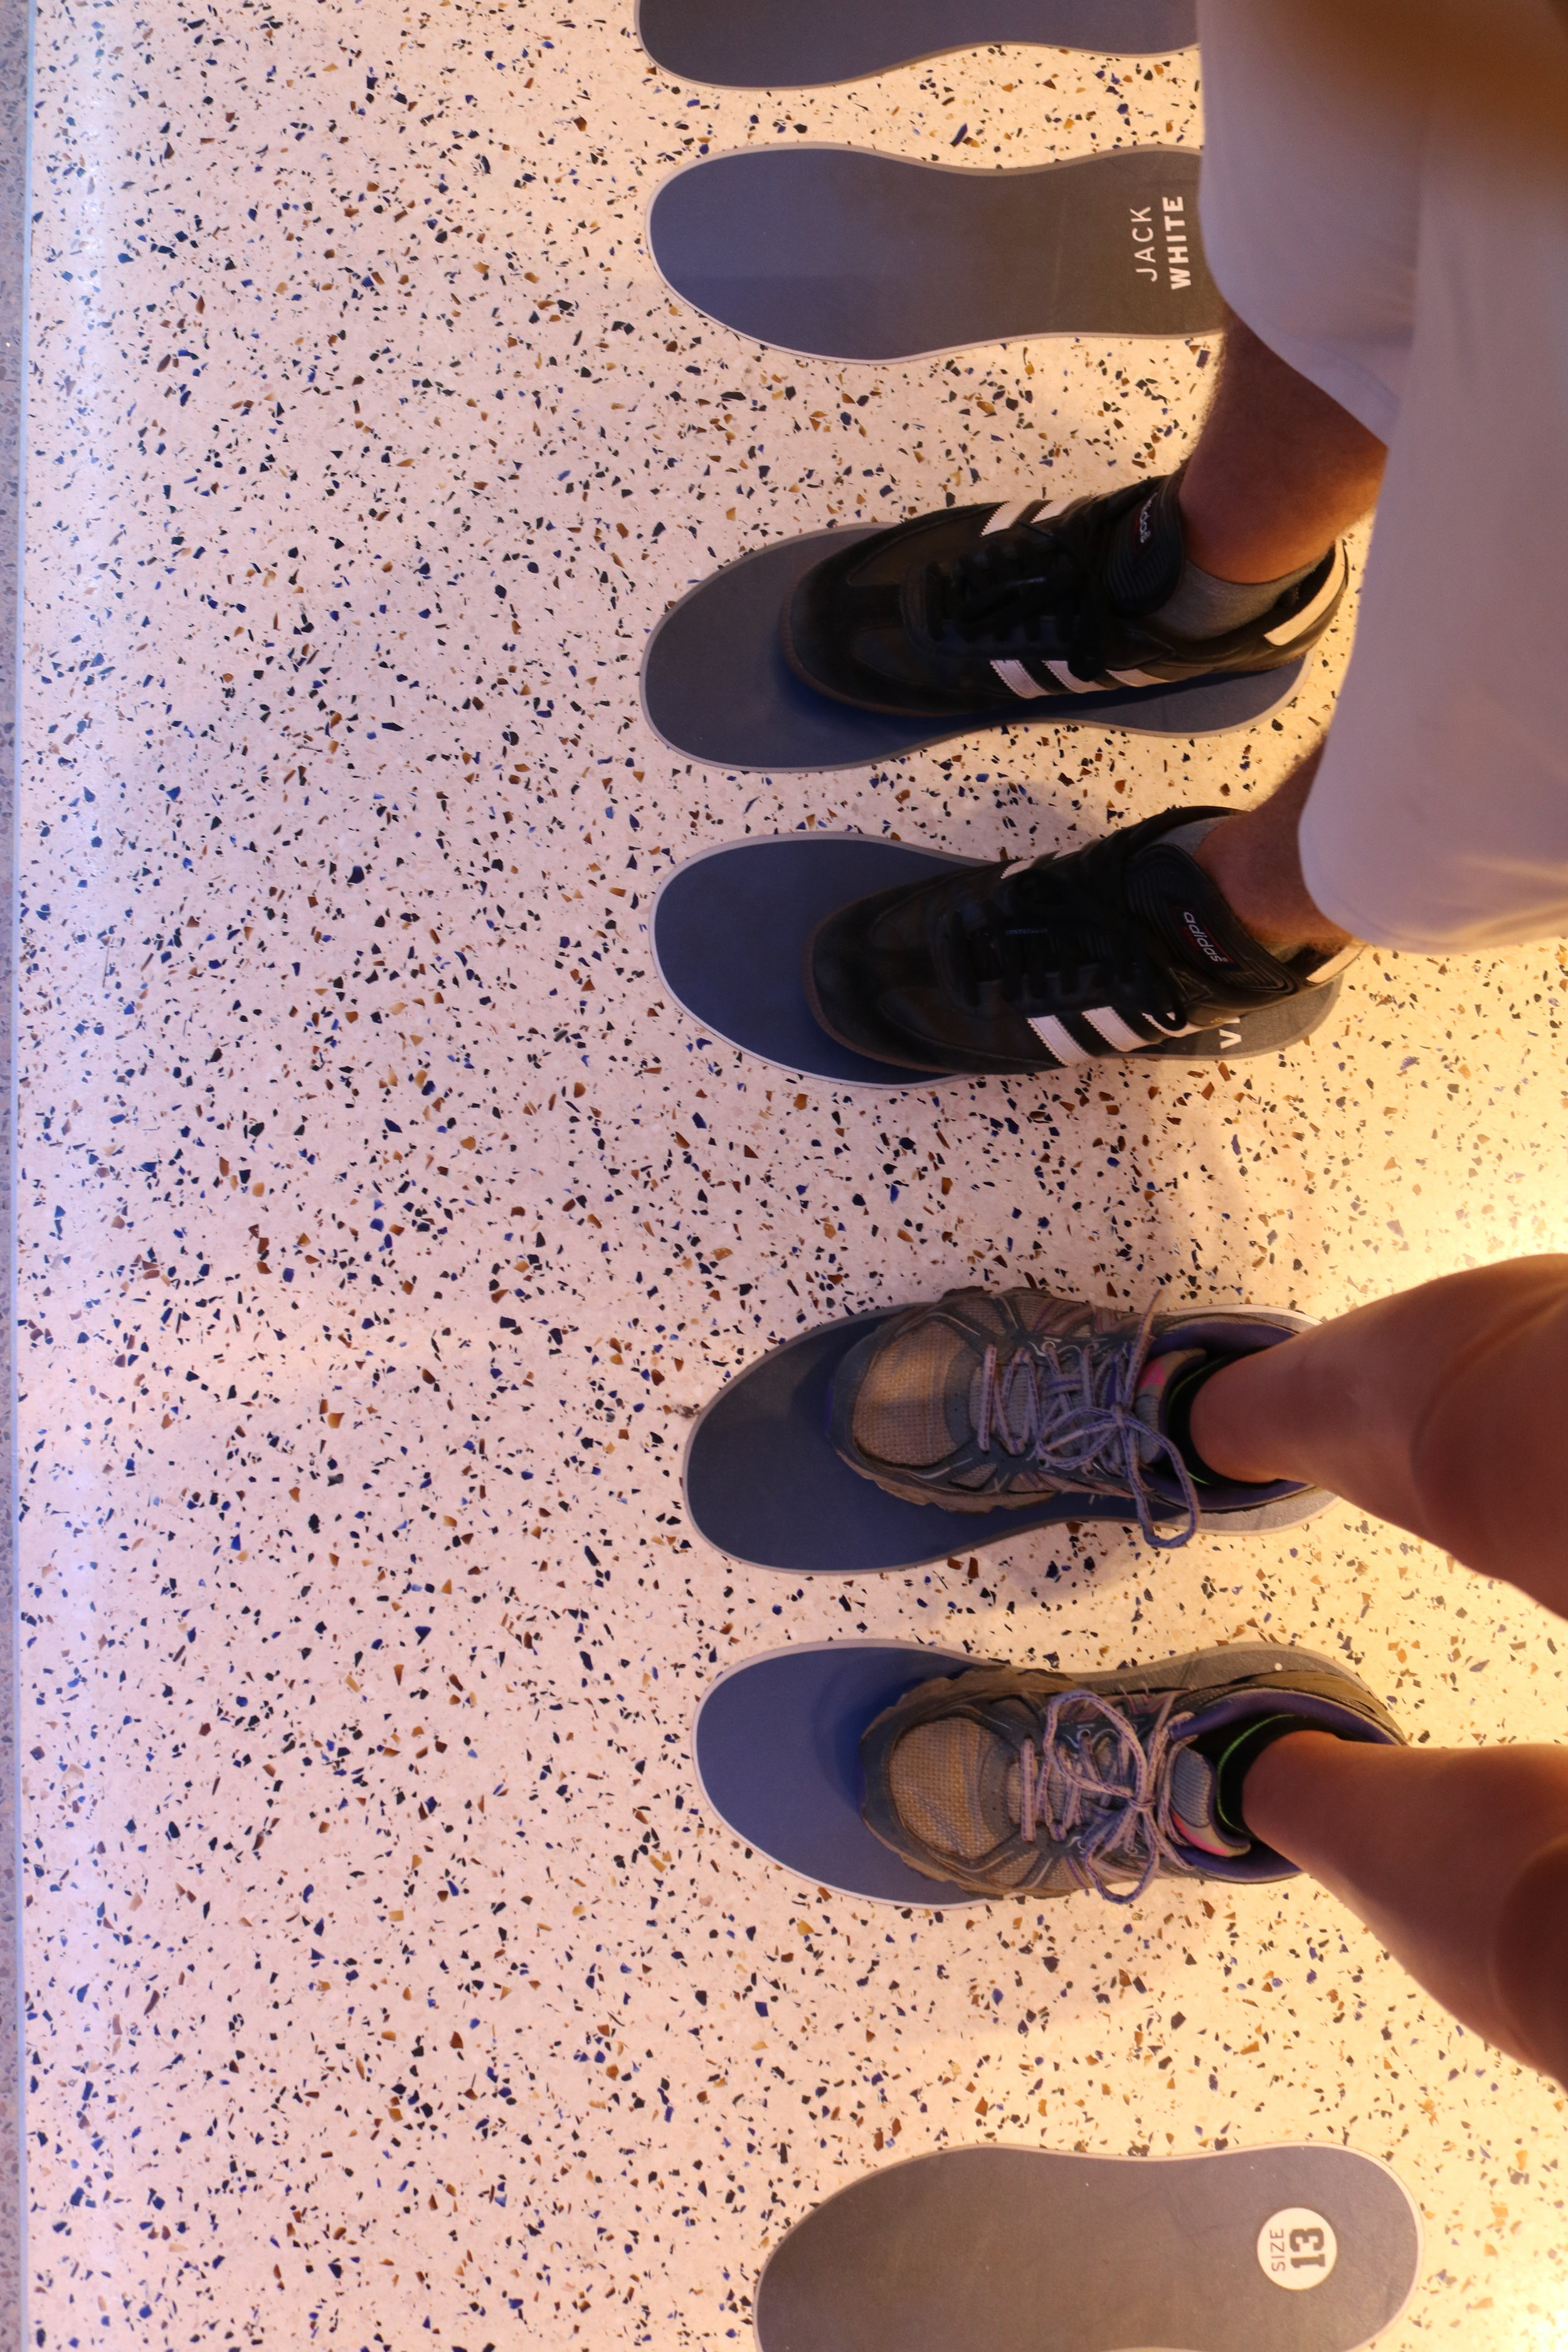 When my wife and I visited Cameron Indoor Stadium this summer, It was fun to see just how much smaller our feet are than those of former Duke basketball players.